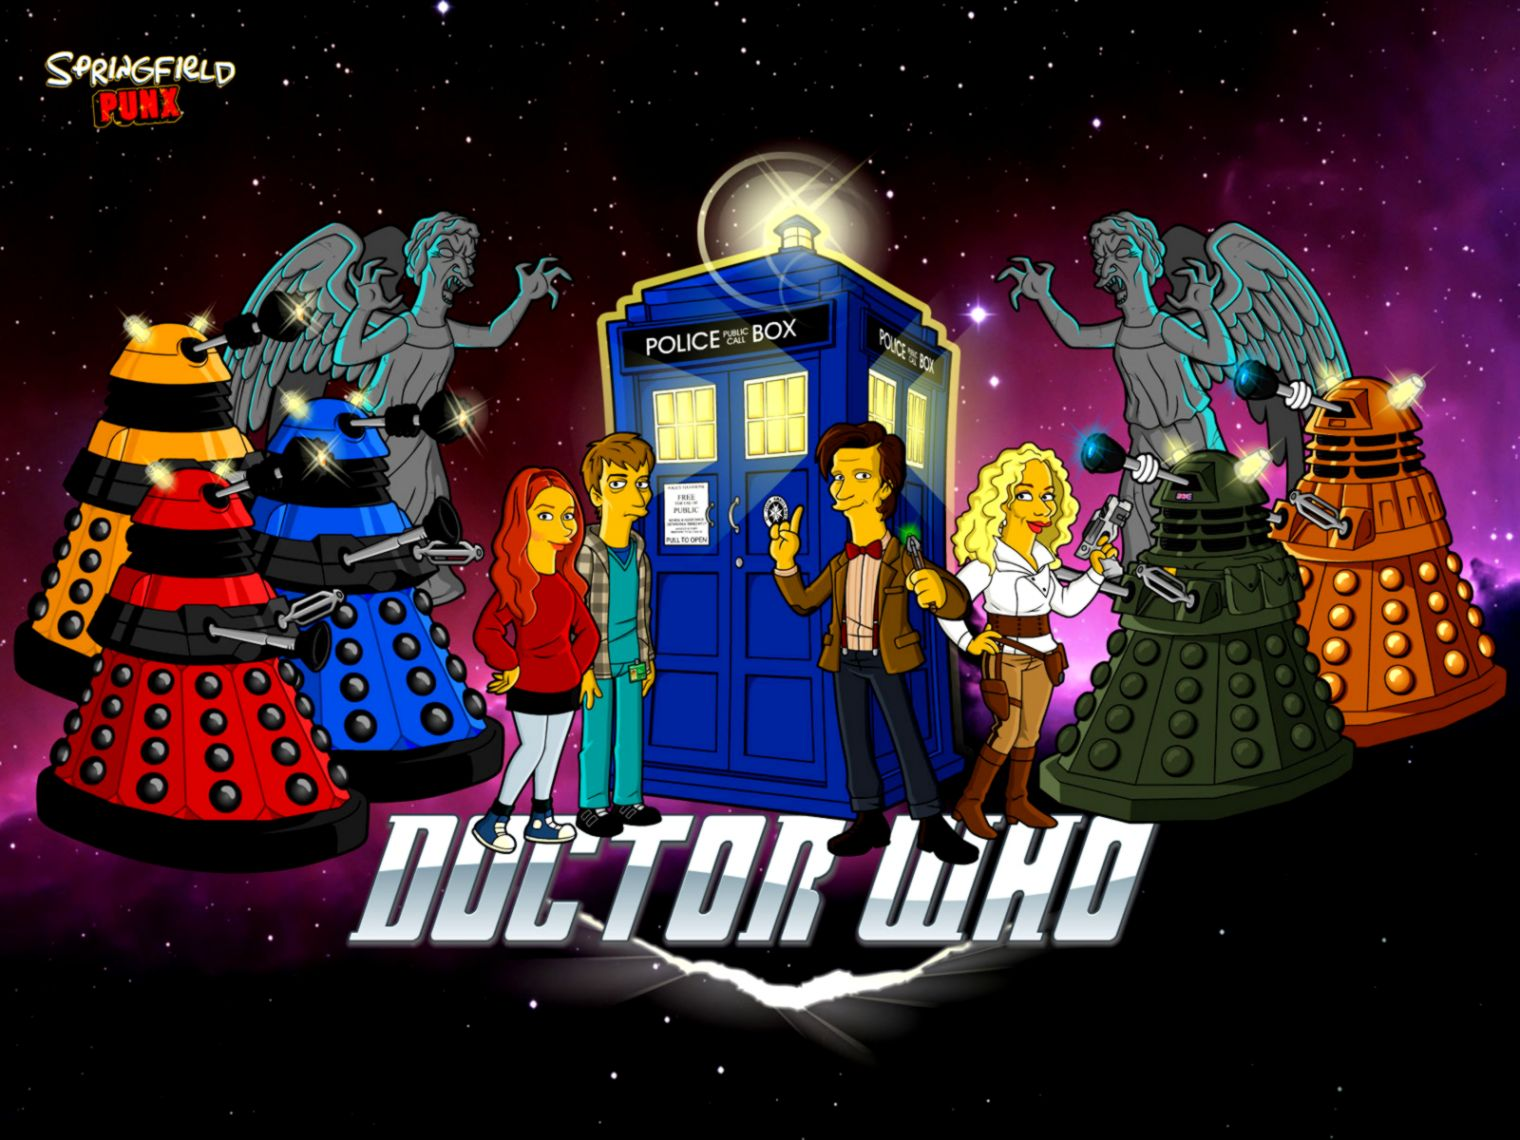 Doctor Who as the Simpsons